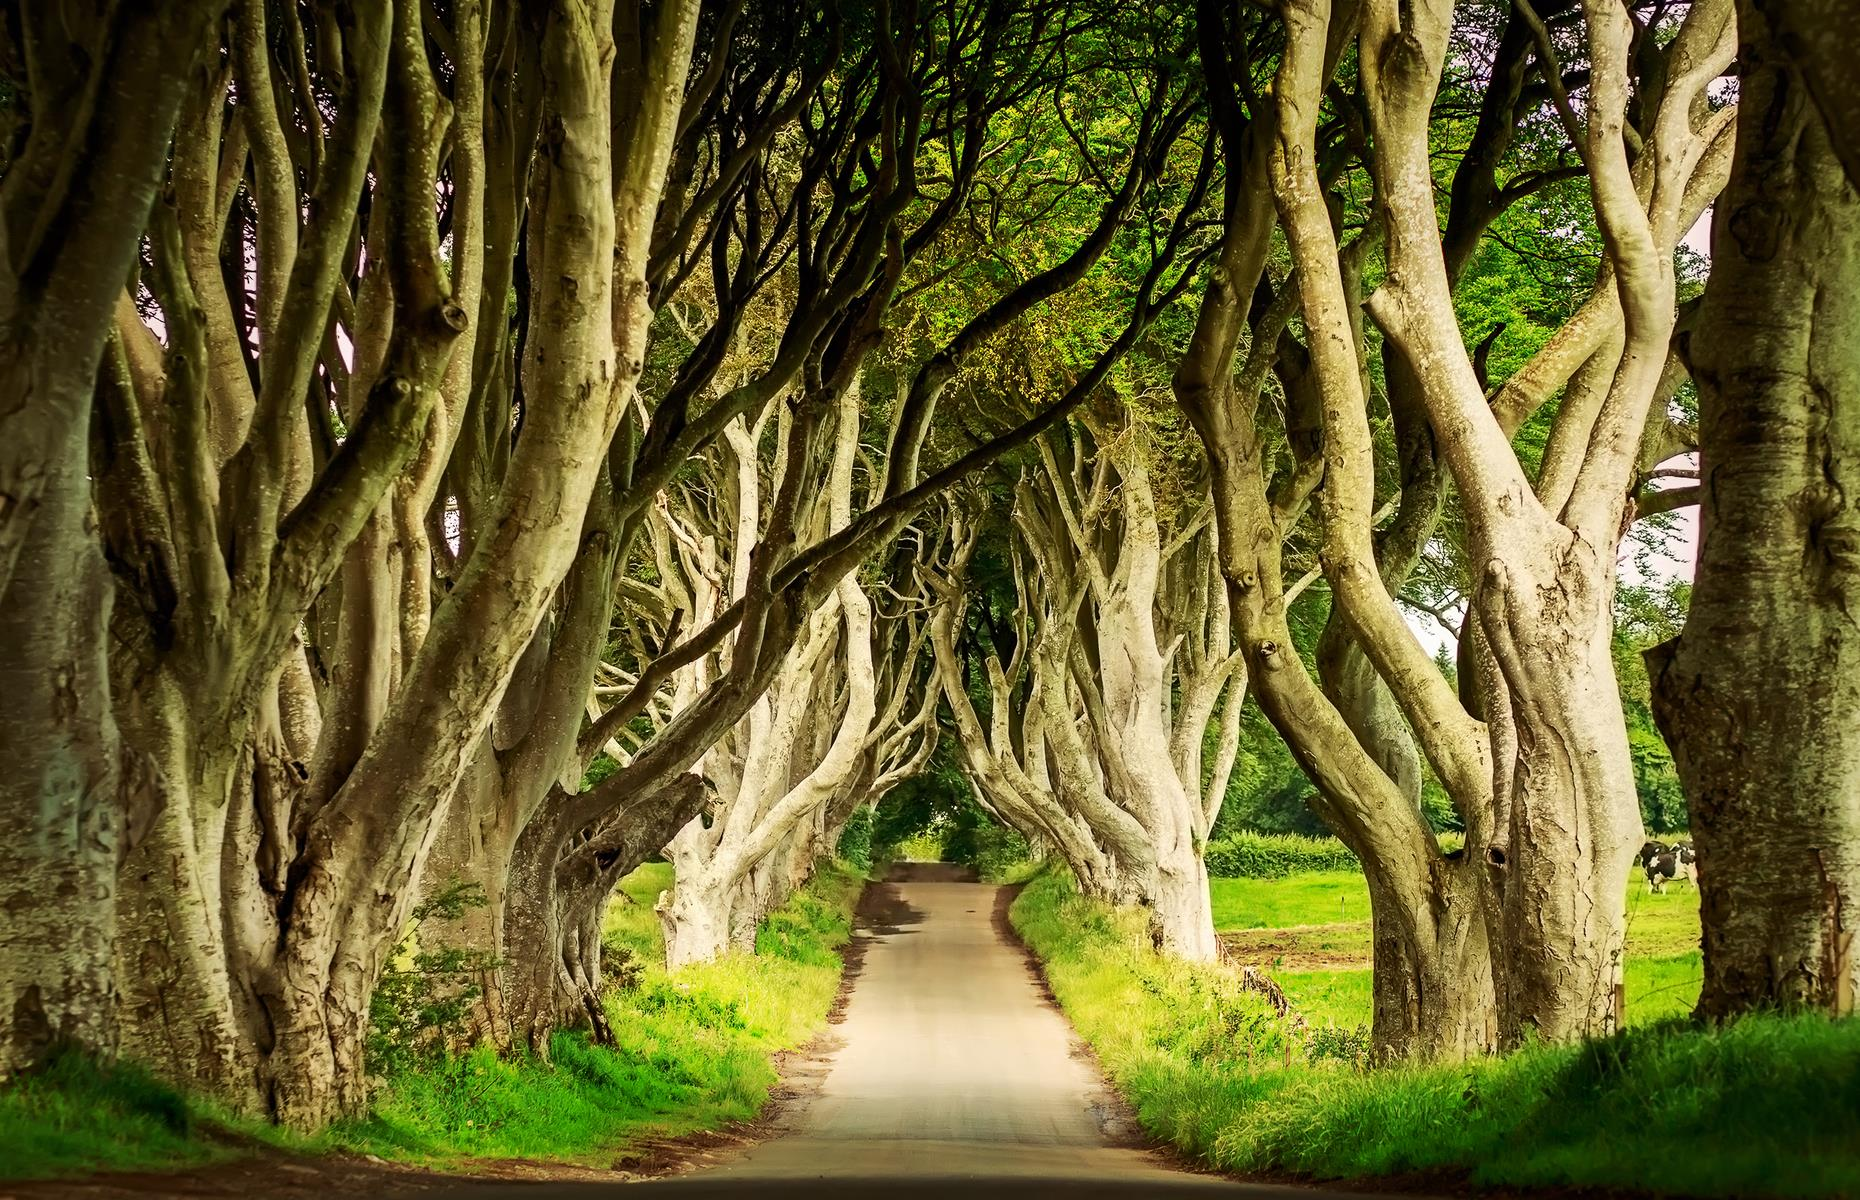 Slide 16 of 27: Chances are, if you're an avid Game of Thrones fan, you might recognize Northern Ireland's Gothic-looking Dark Hedges, located in County Antrim. It features as the Kingsroad in the much-loved TV show and has been attracting devotees of the series ever since.